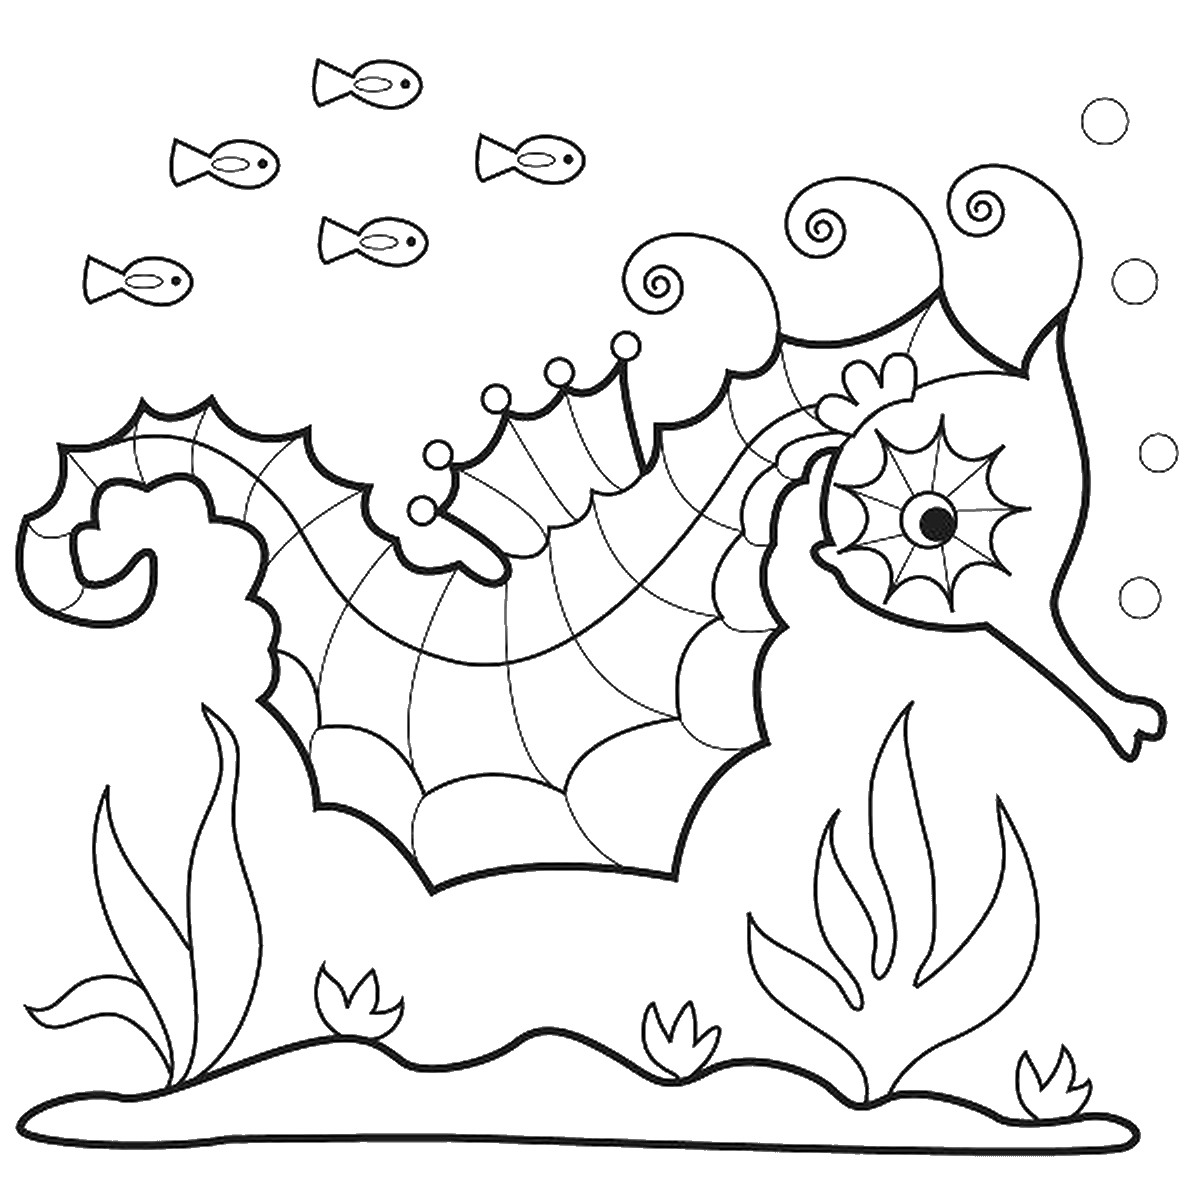 seahorse images for coloring realistic seahorse coloring pages for adult realistic seahorse coloring images for